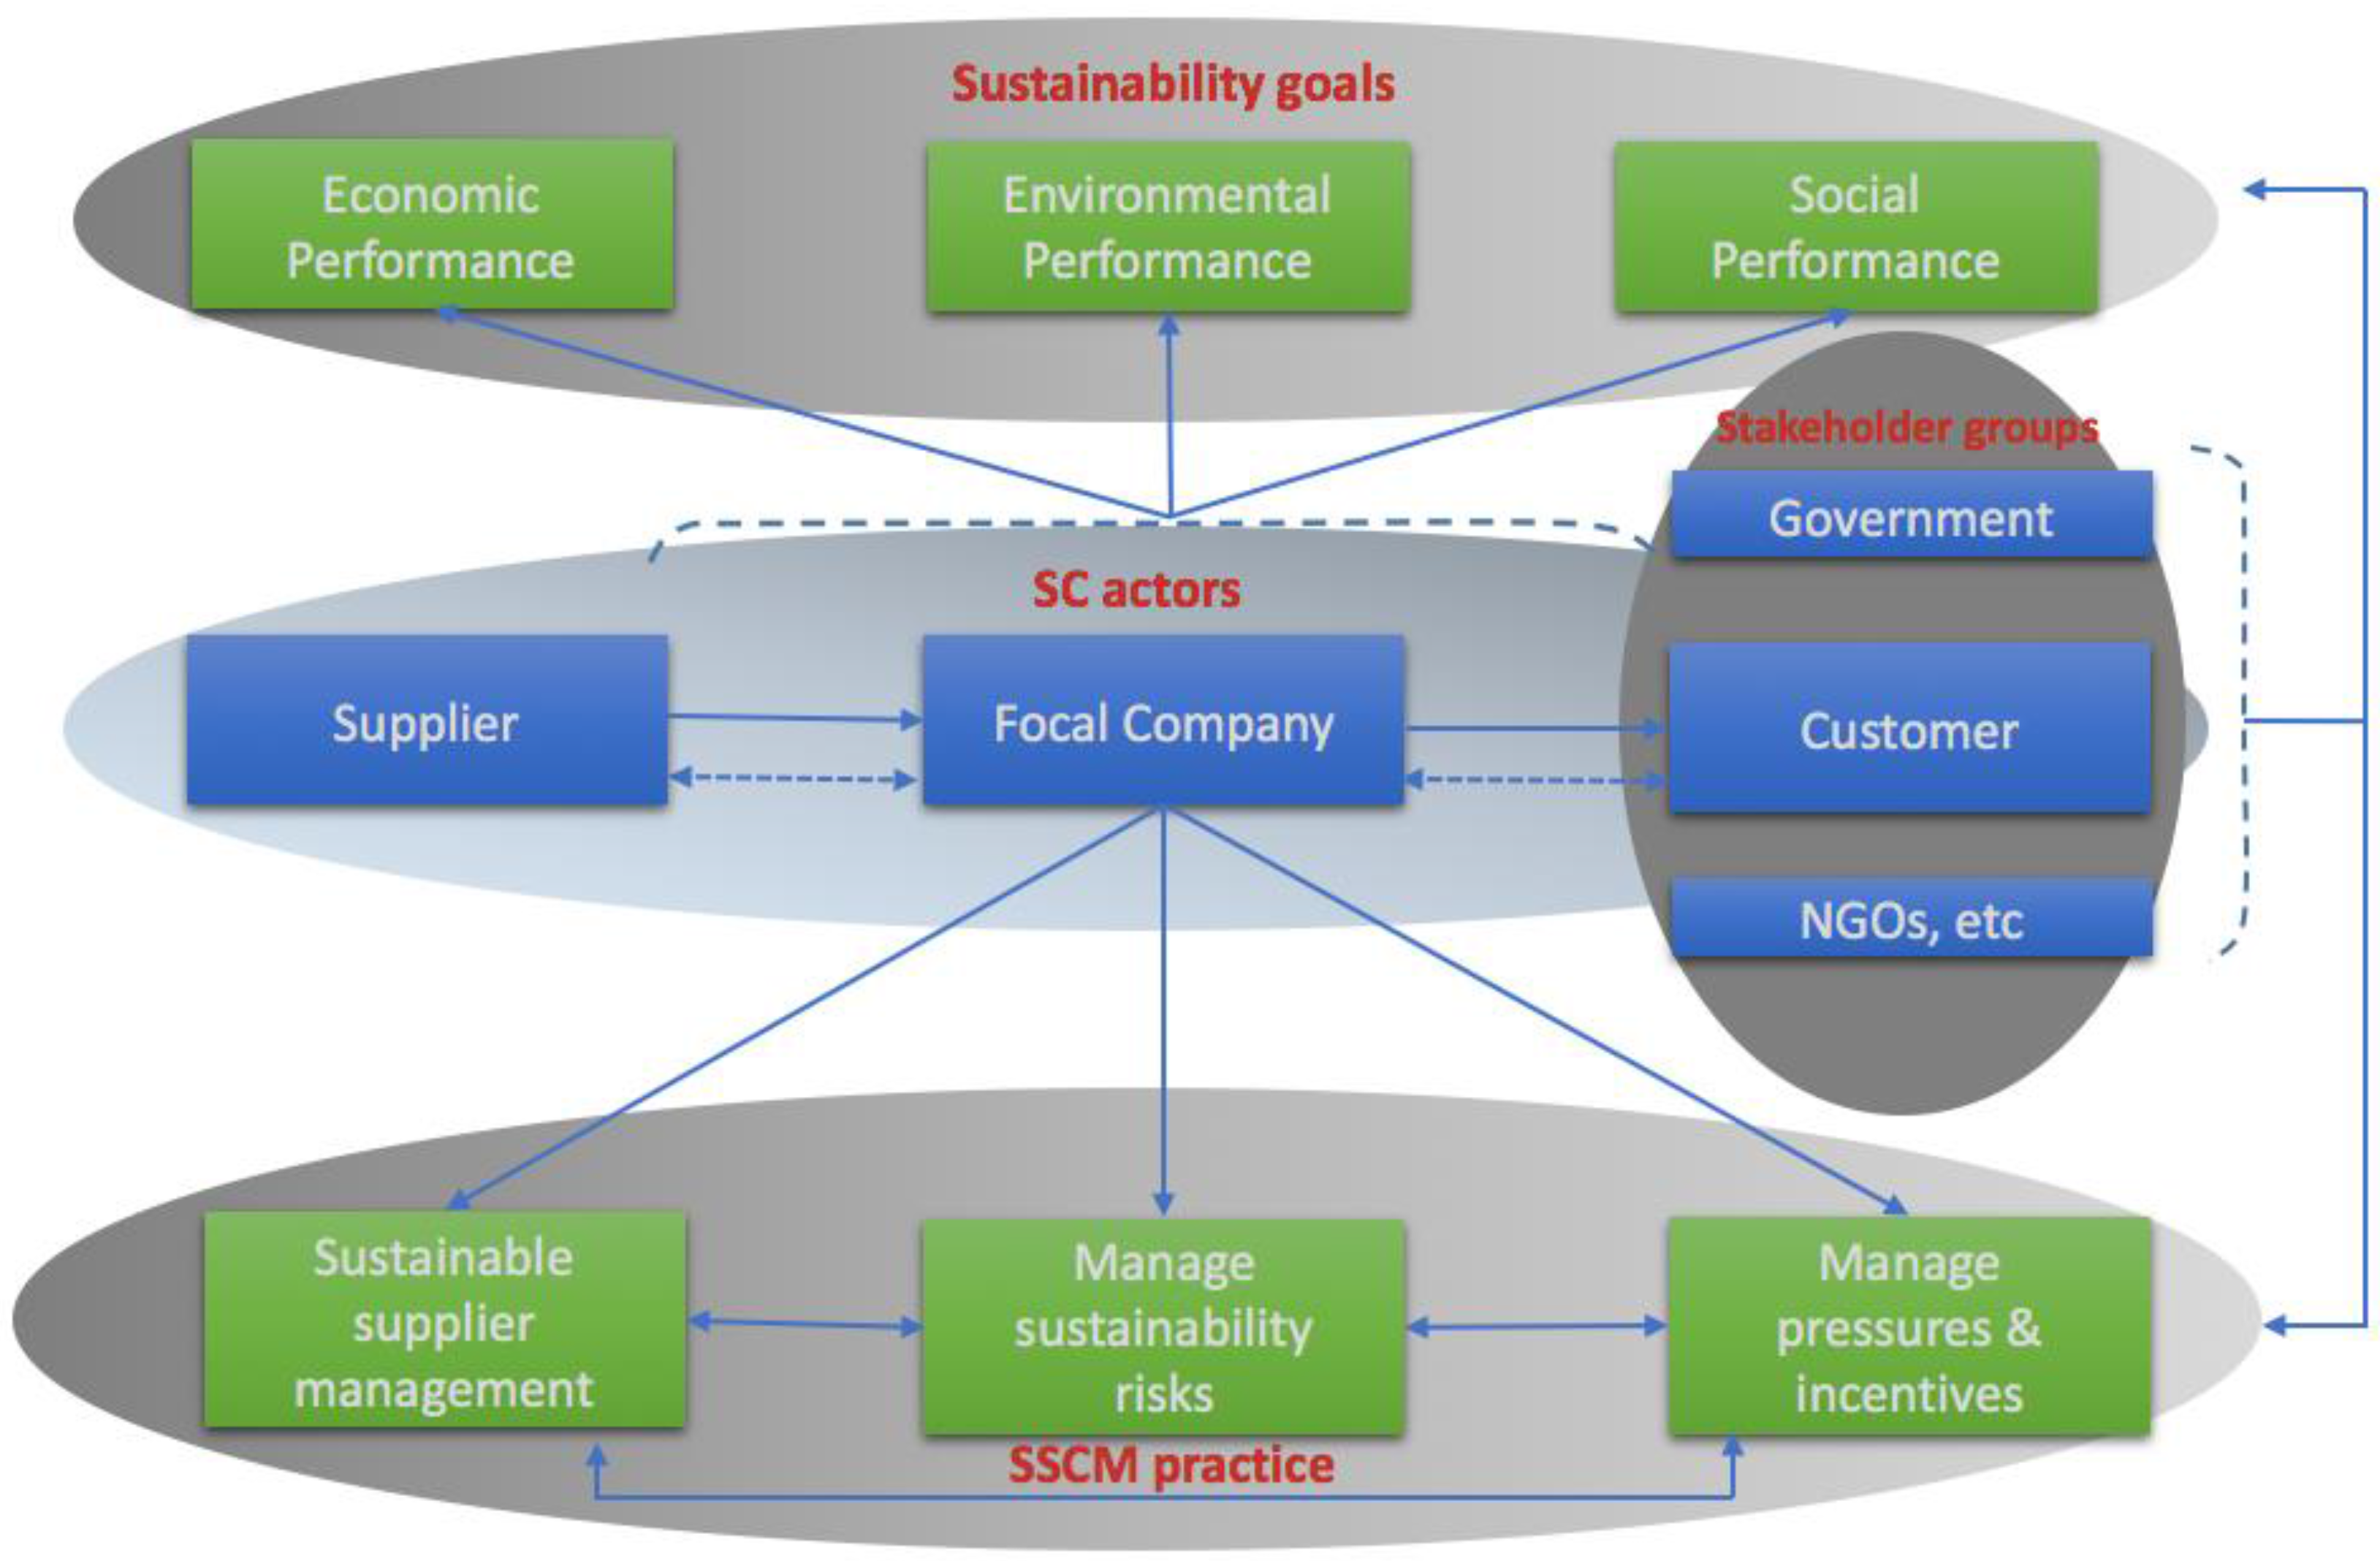 sustainable supply chain management state of The objective of sustainable supply chain management is to ensure alignment of our supply base's social, ethical, environmental, safety and health responsibilities .